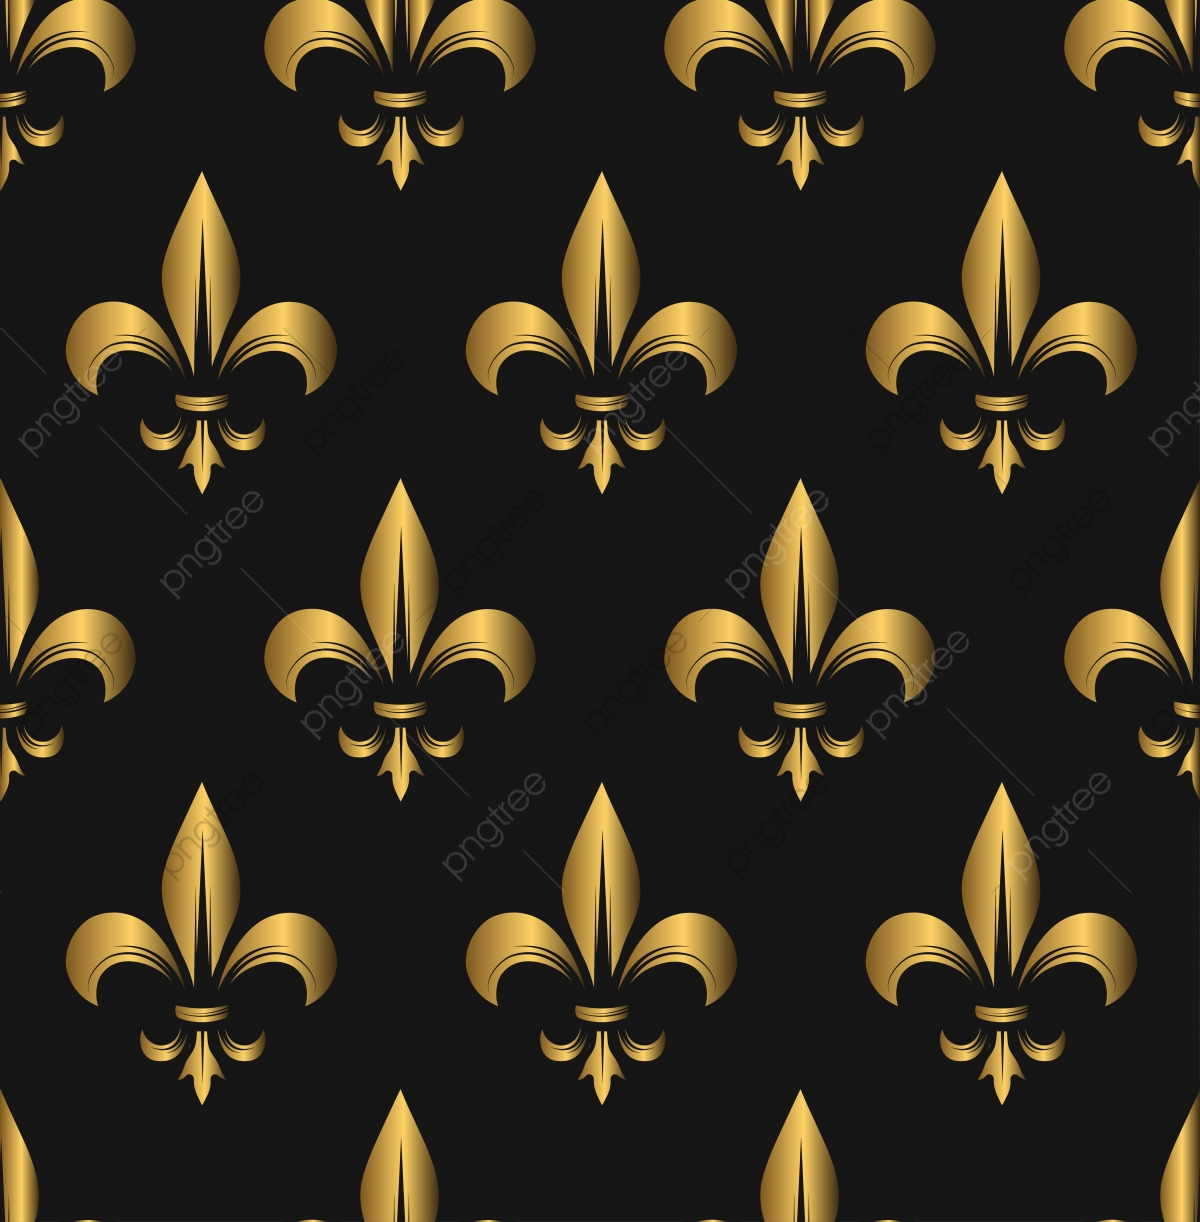 Seamless Golden Fleur De Lis Pattern Seamless Fleur De Lis Lily Png And Vector With Transparent Background For Free Download